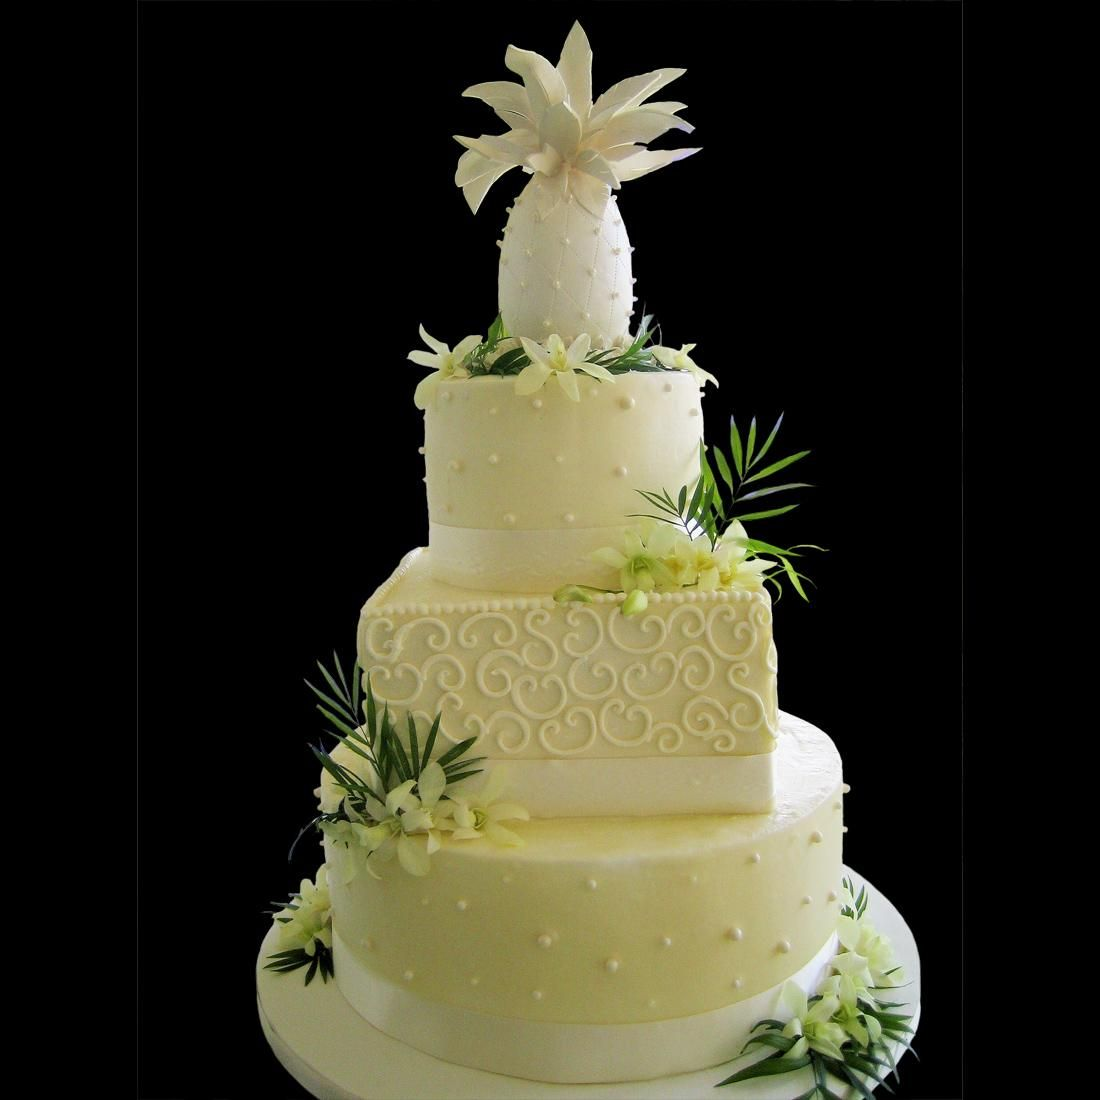 Pineapple Cake Httpwwwwetakethecakecominstoreonly - Pineapple Wedding Cake